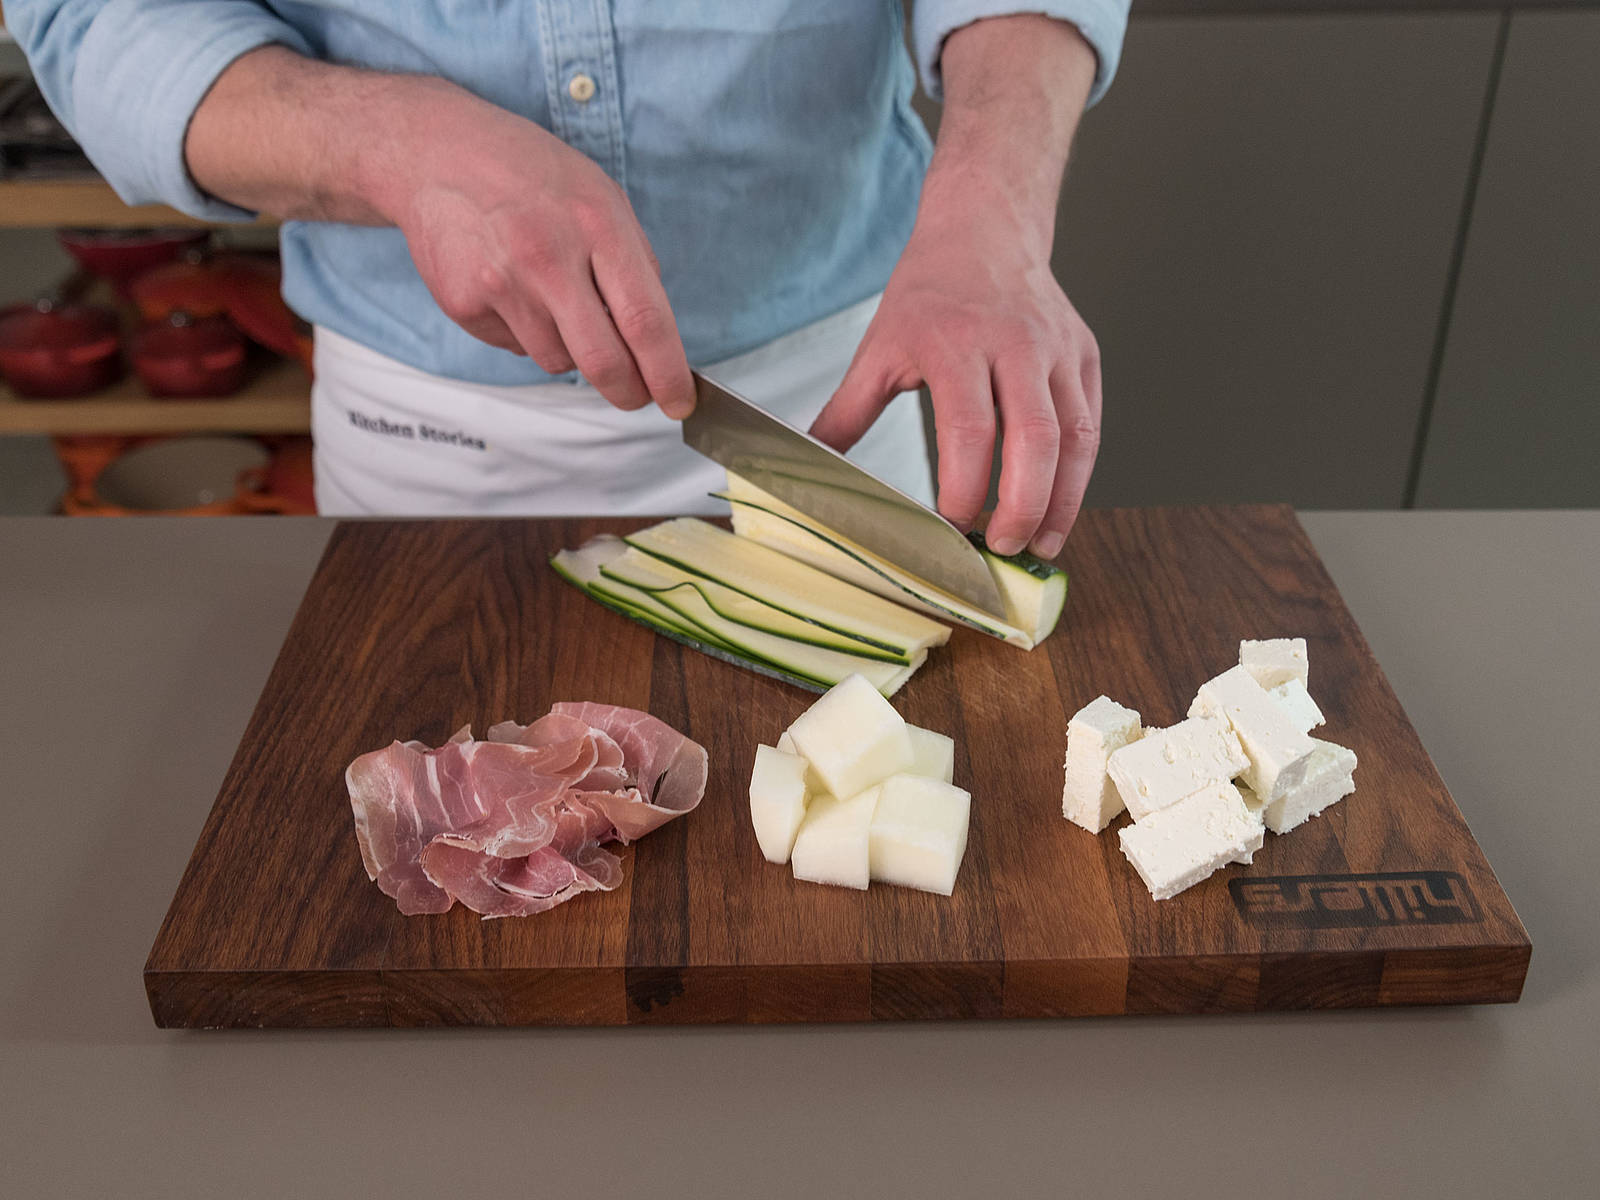 Dice feta and melon into equal-sized pieces. Slice zucchini into thin slices, lenghtwise.